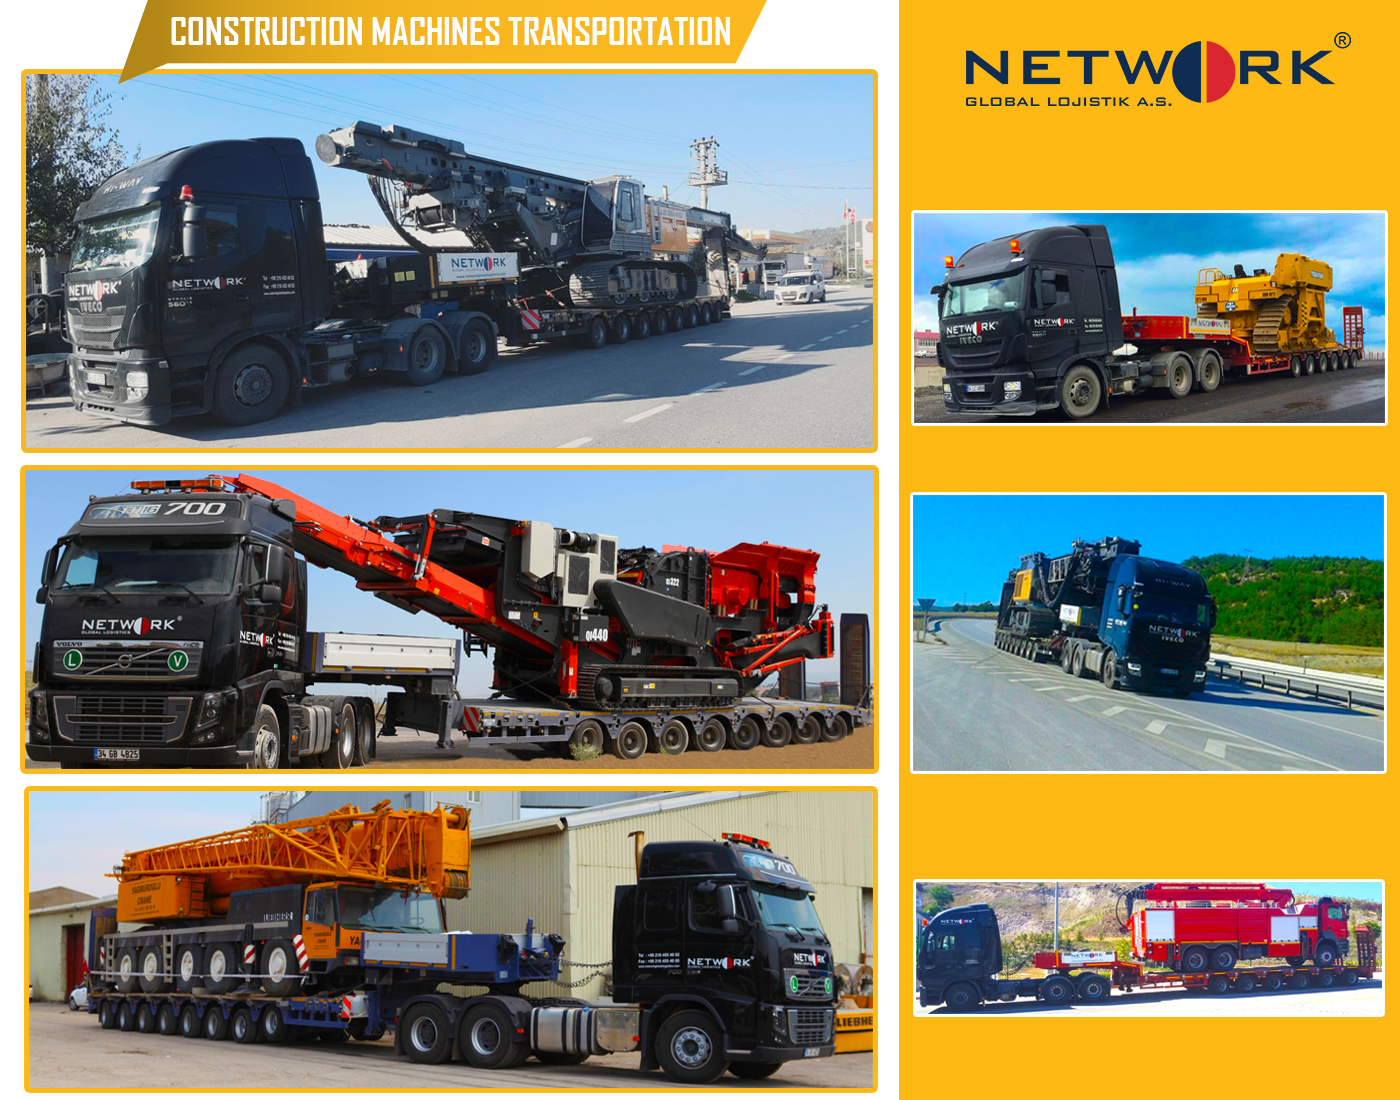 Construction-Machines-Transportation